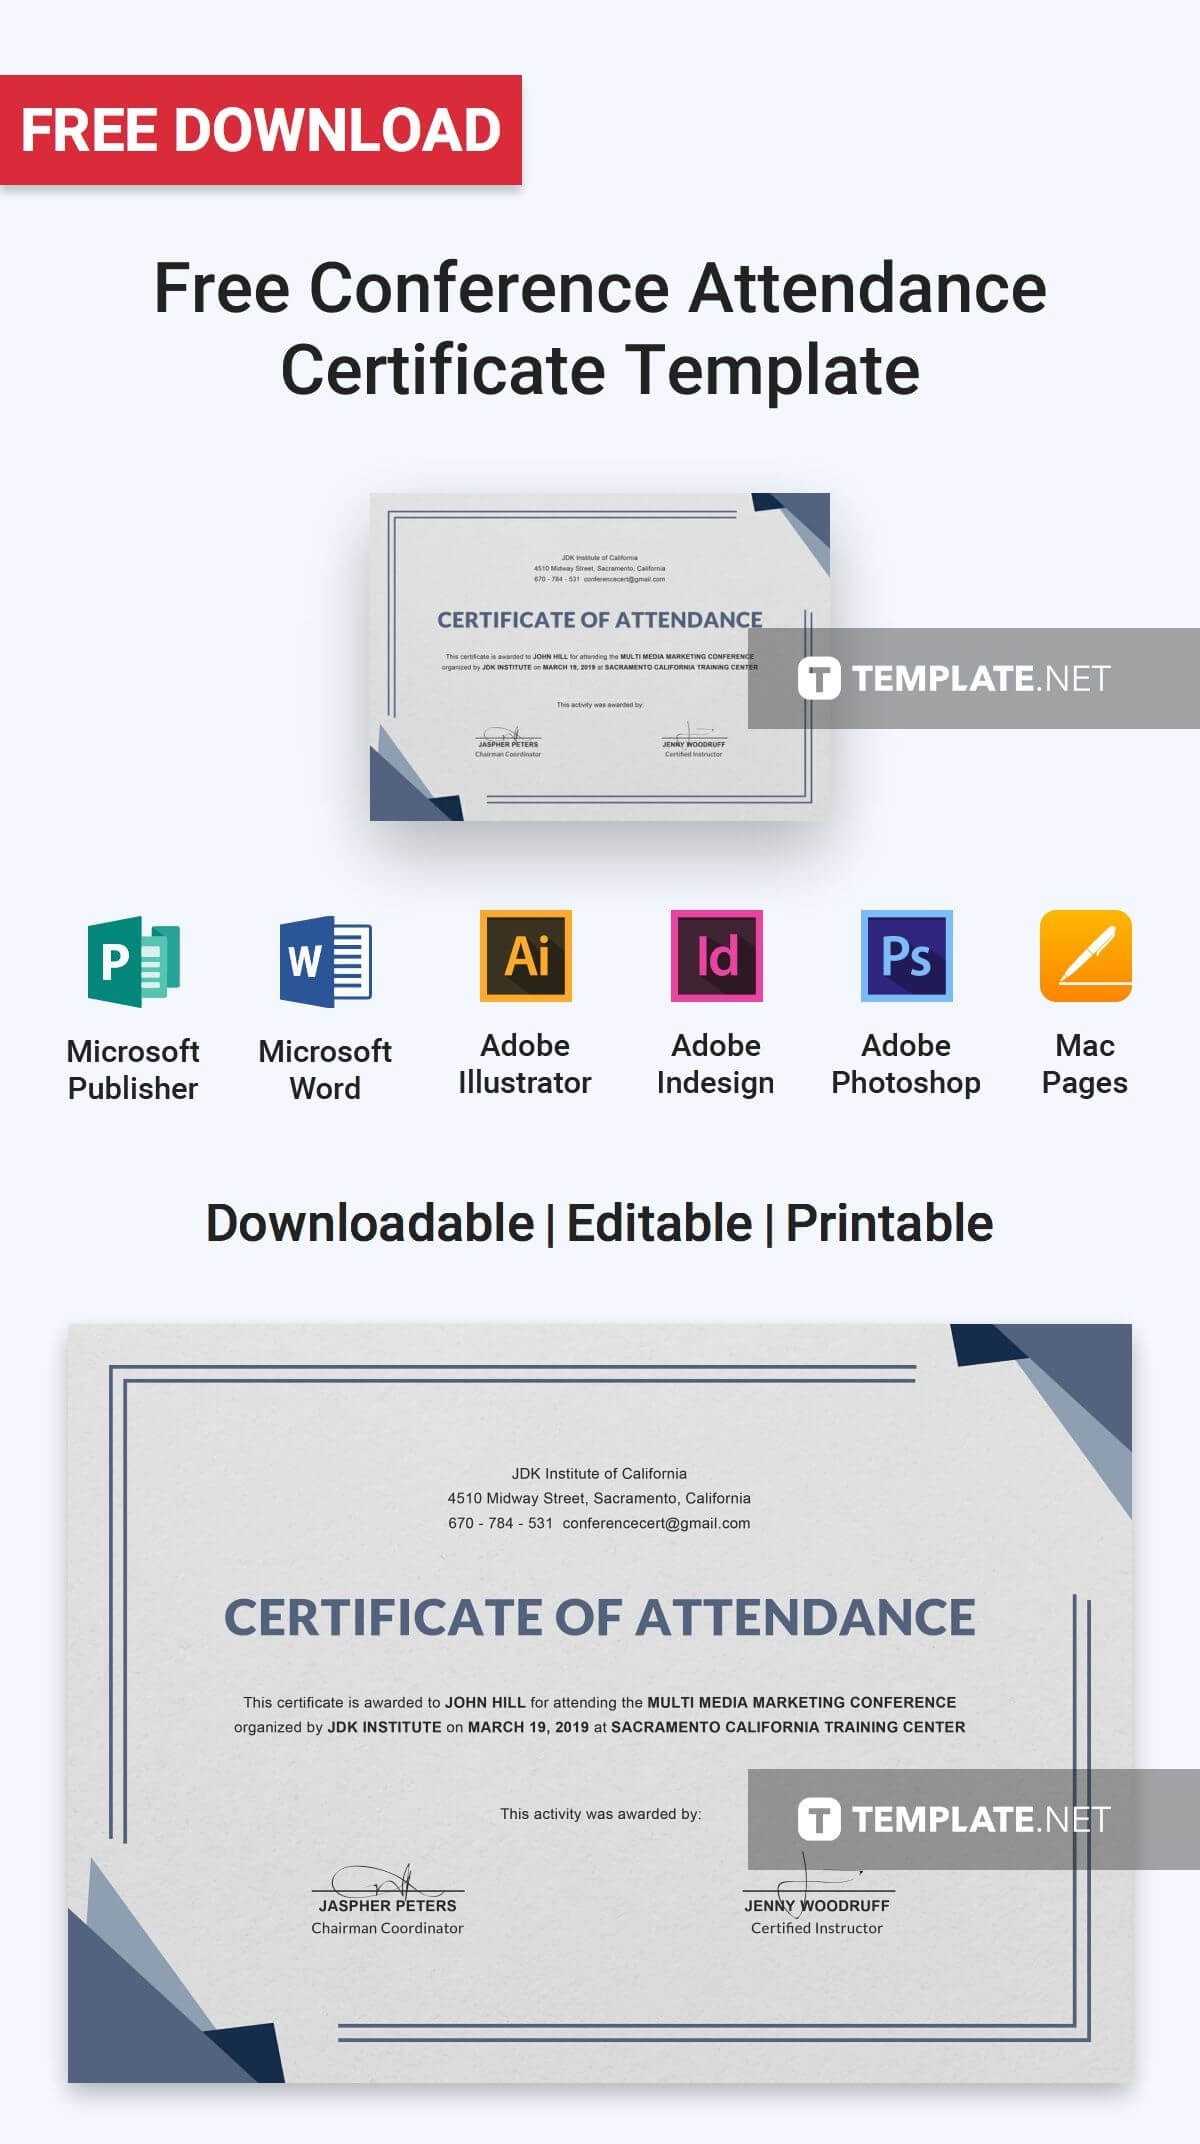 Free Conference Attendance Certificate | Certificate In Certificate Of Attendance Conference Template